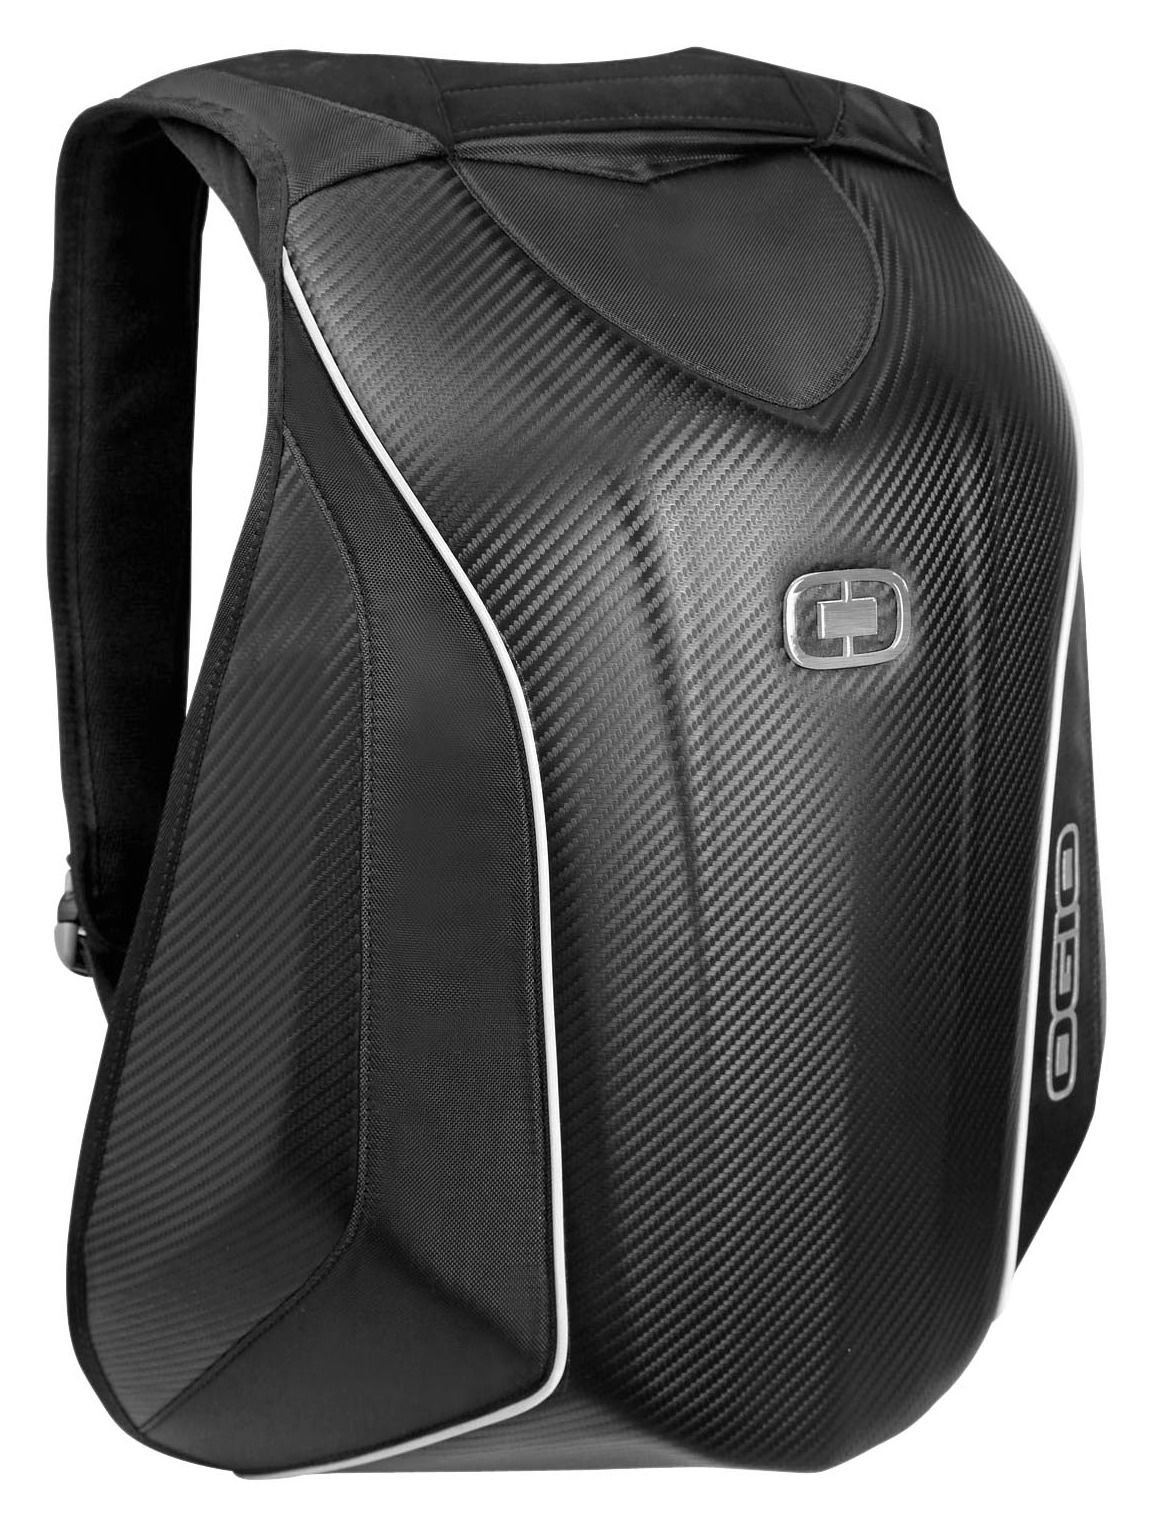 OGIO No Drag Mach 5 Backpack | 10% ($18.00) Off! - RevZilla